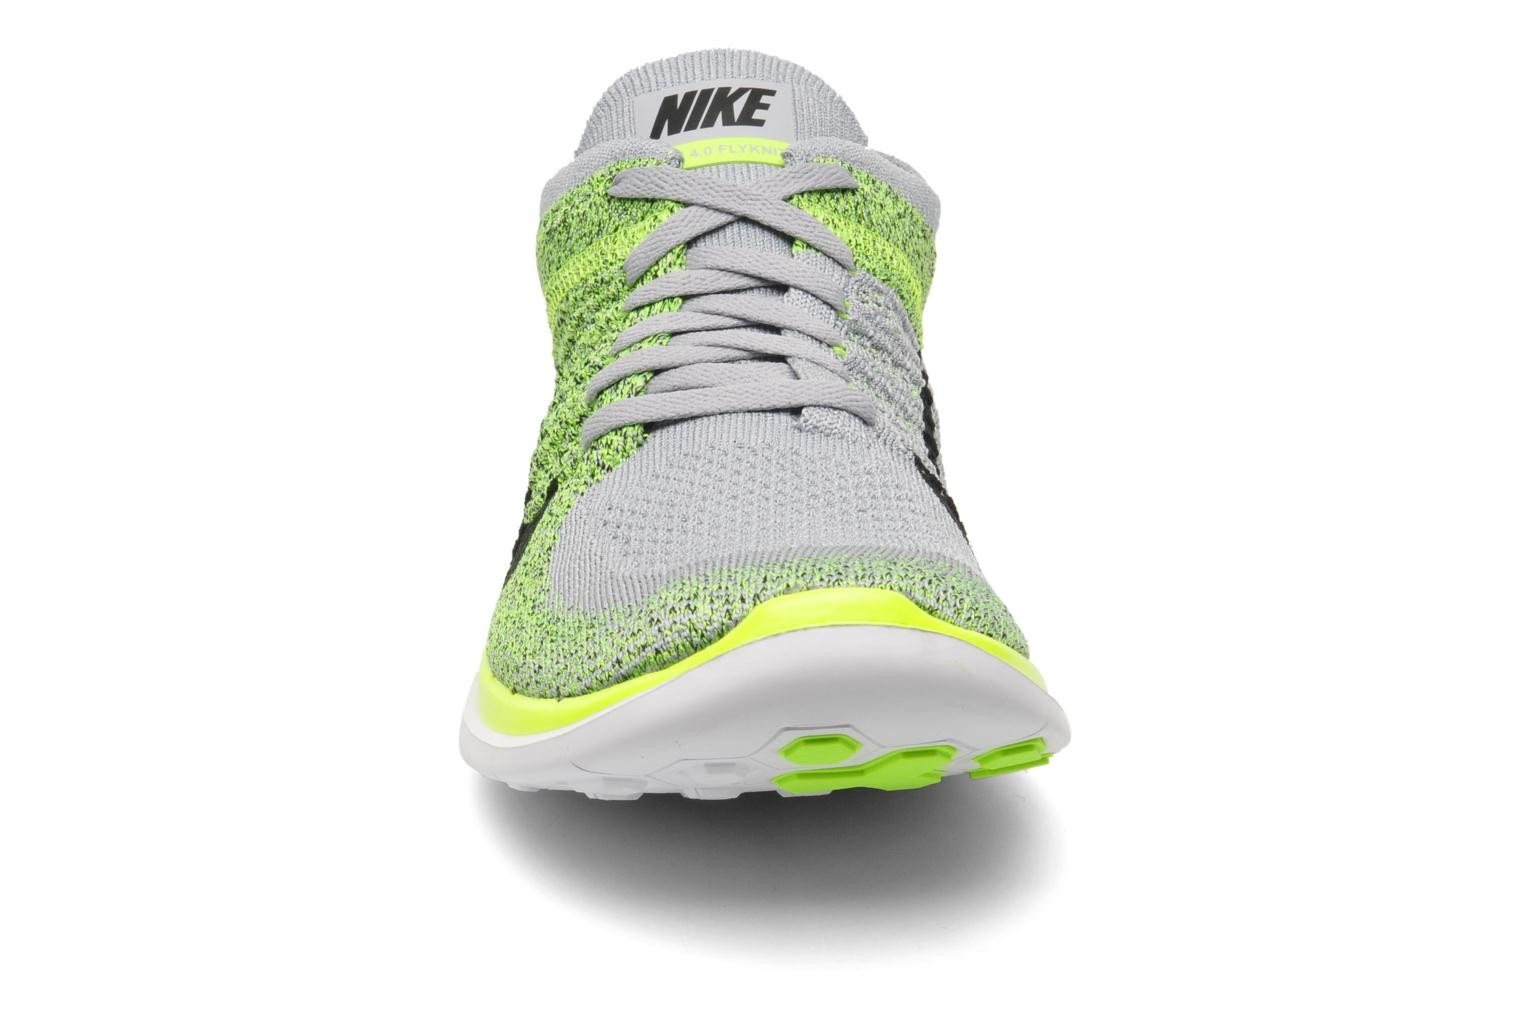 big sale 0d033 1efd2 Price $64.5 Nike Free 4.0 Flyknit Wolf Grey/Black-Volt ...